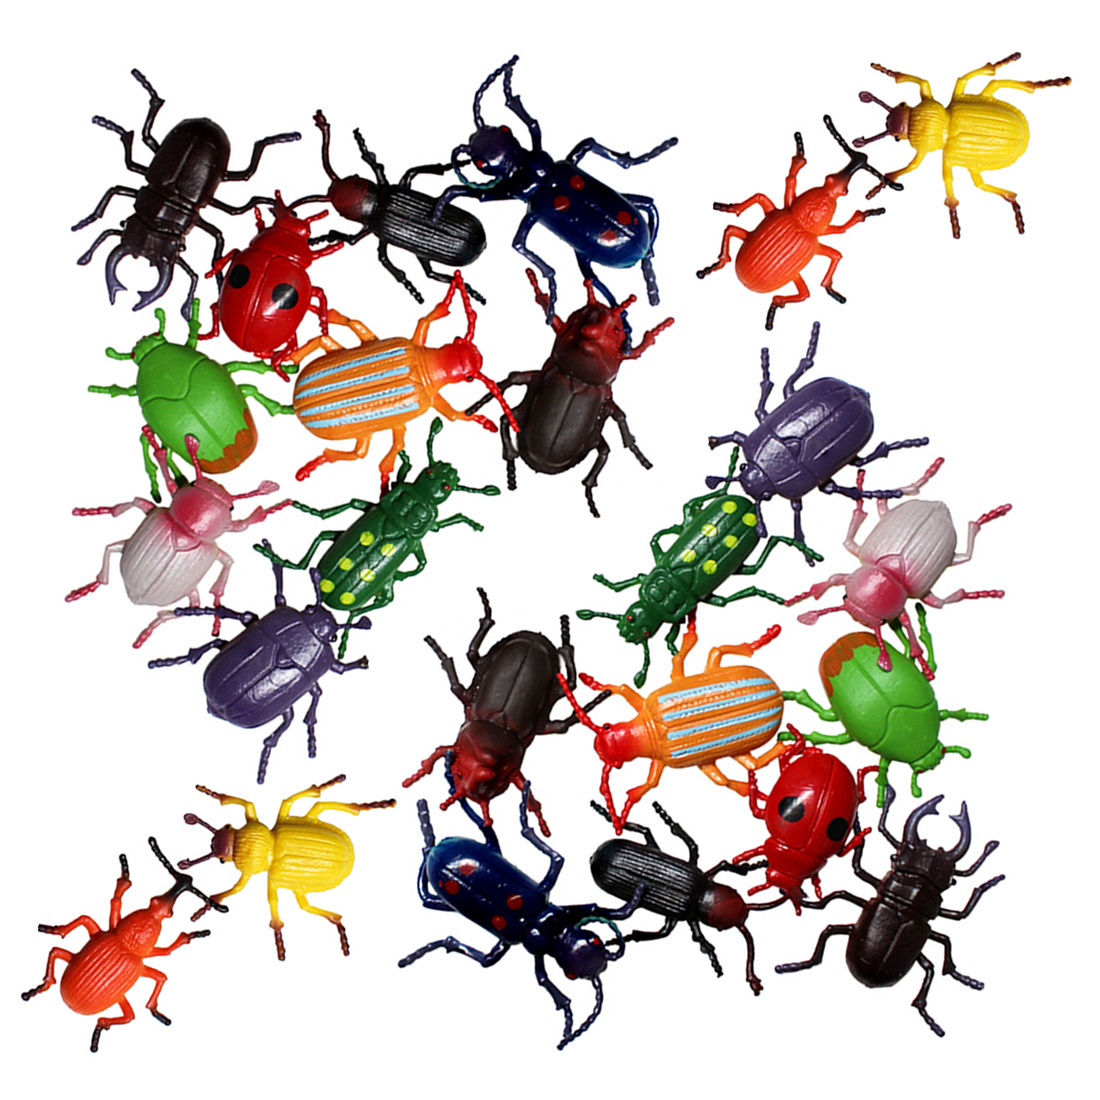 12Pcs / 24Pcs Beetle Toy Simulation Model Children Early Learning Cognitive Toy Early Learning Educational Toys Set For Kids